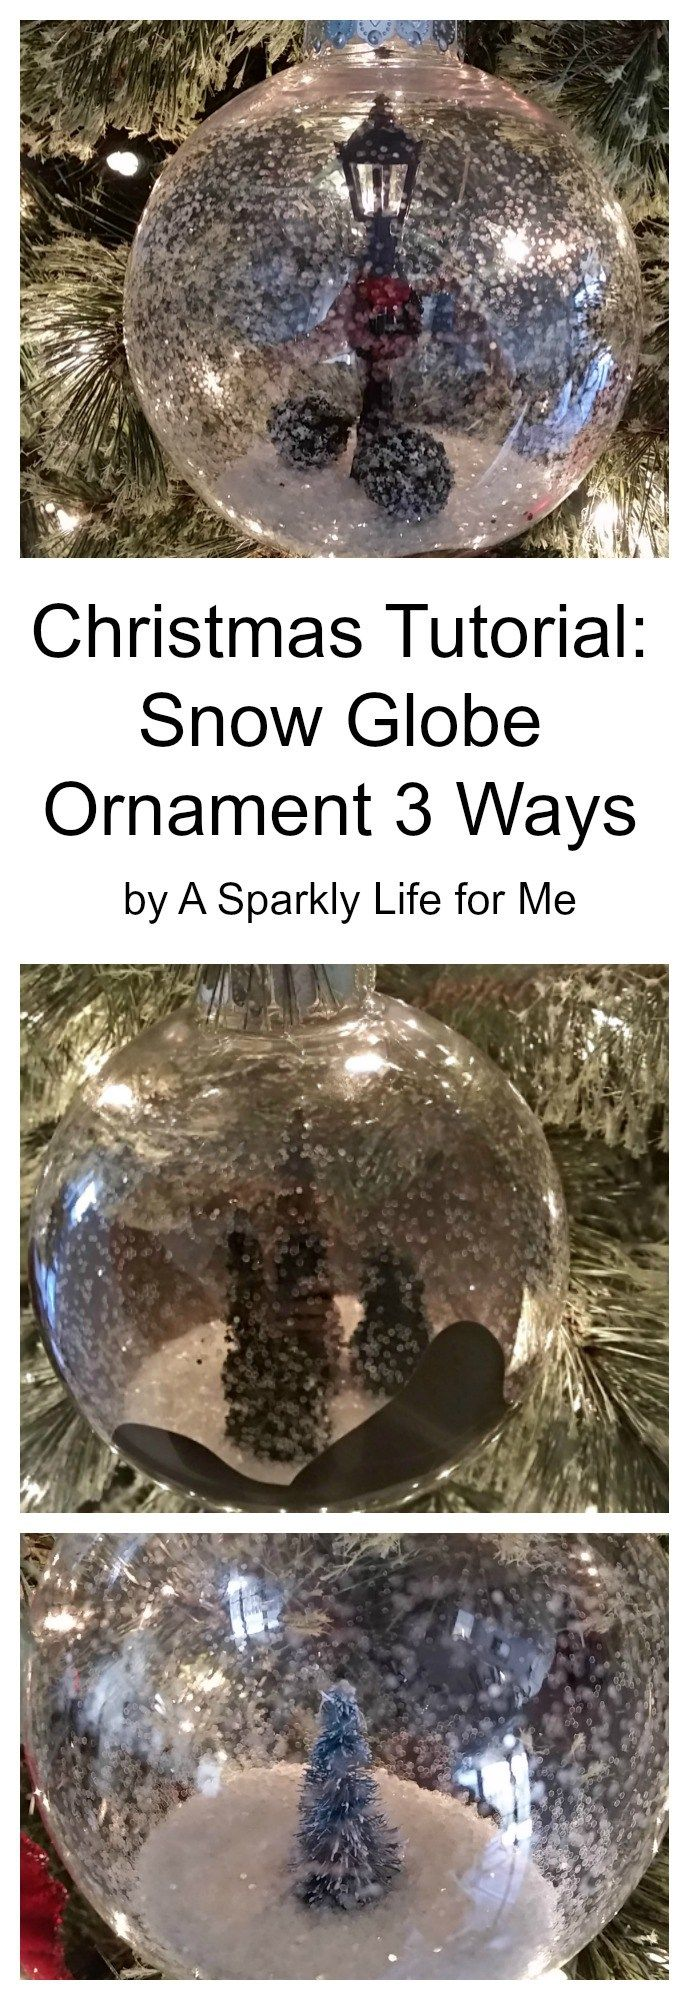 Christmas Tutorial Snow Globe Ornament 3 Ways {video Tutorial}